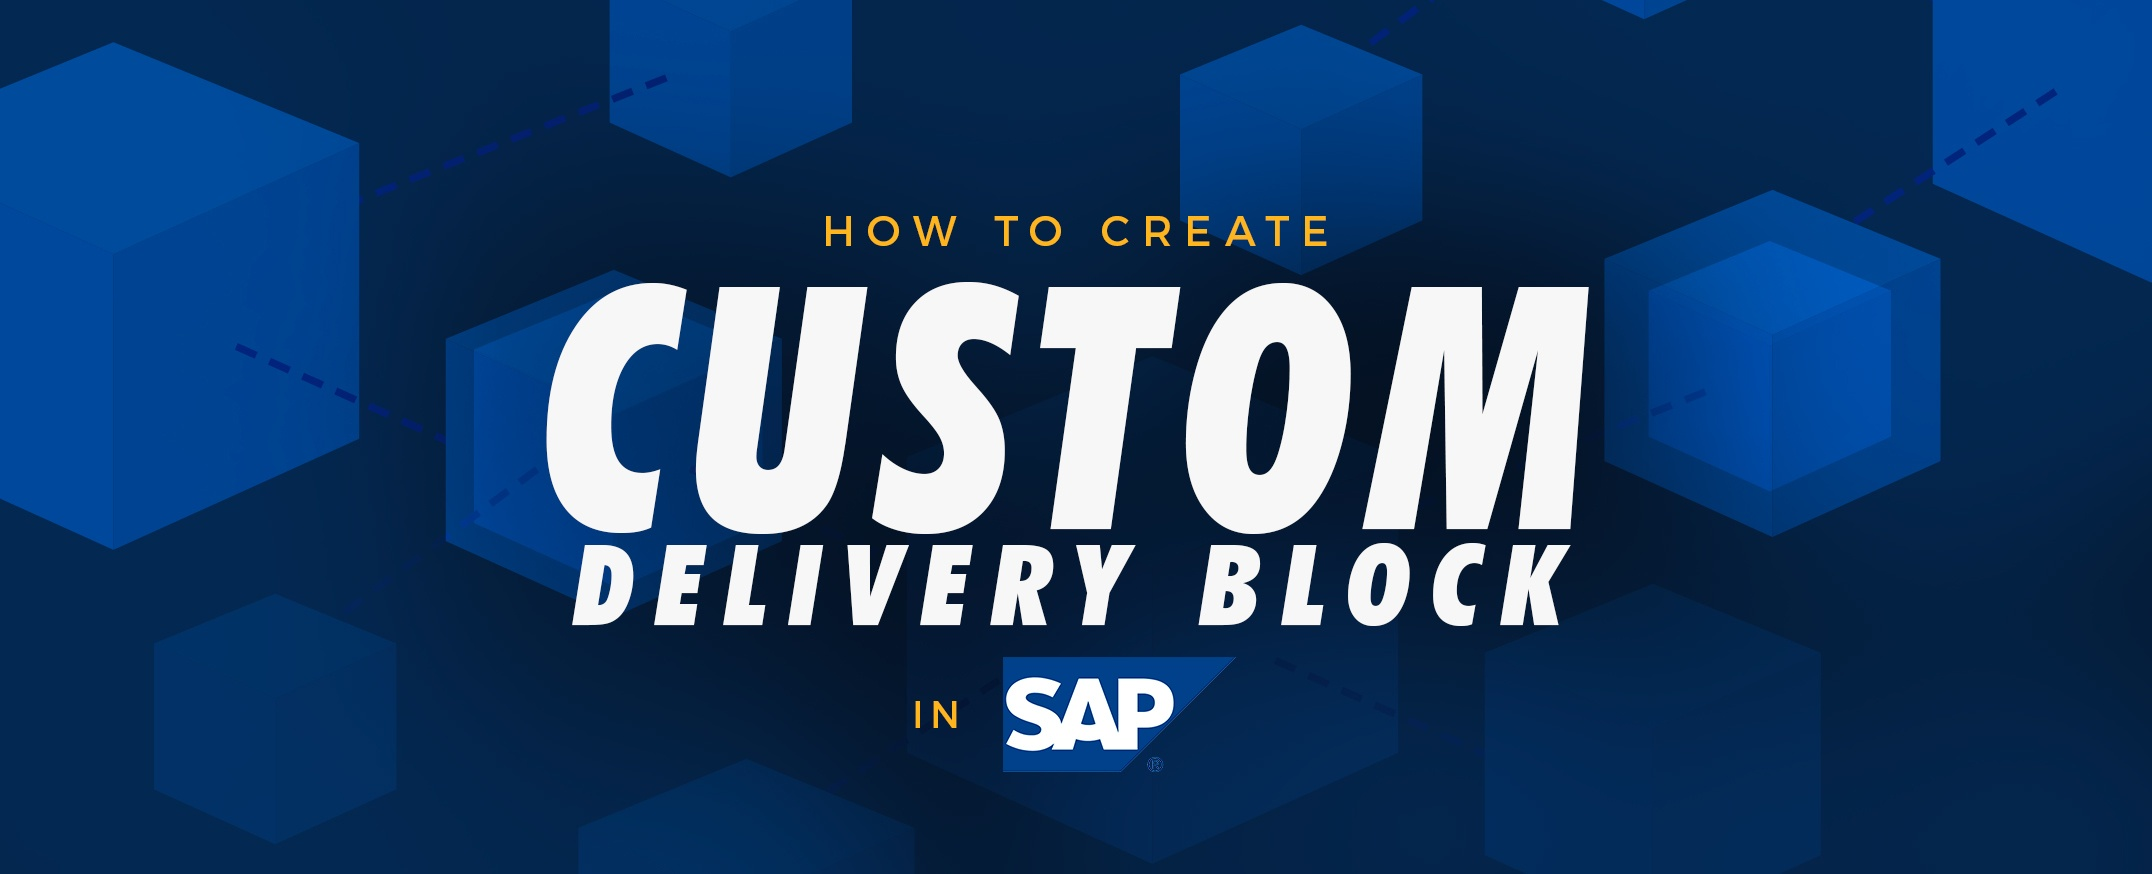 How to Create Custom Delivery Block in SAP? | APPSeCONNECT